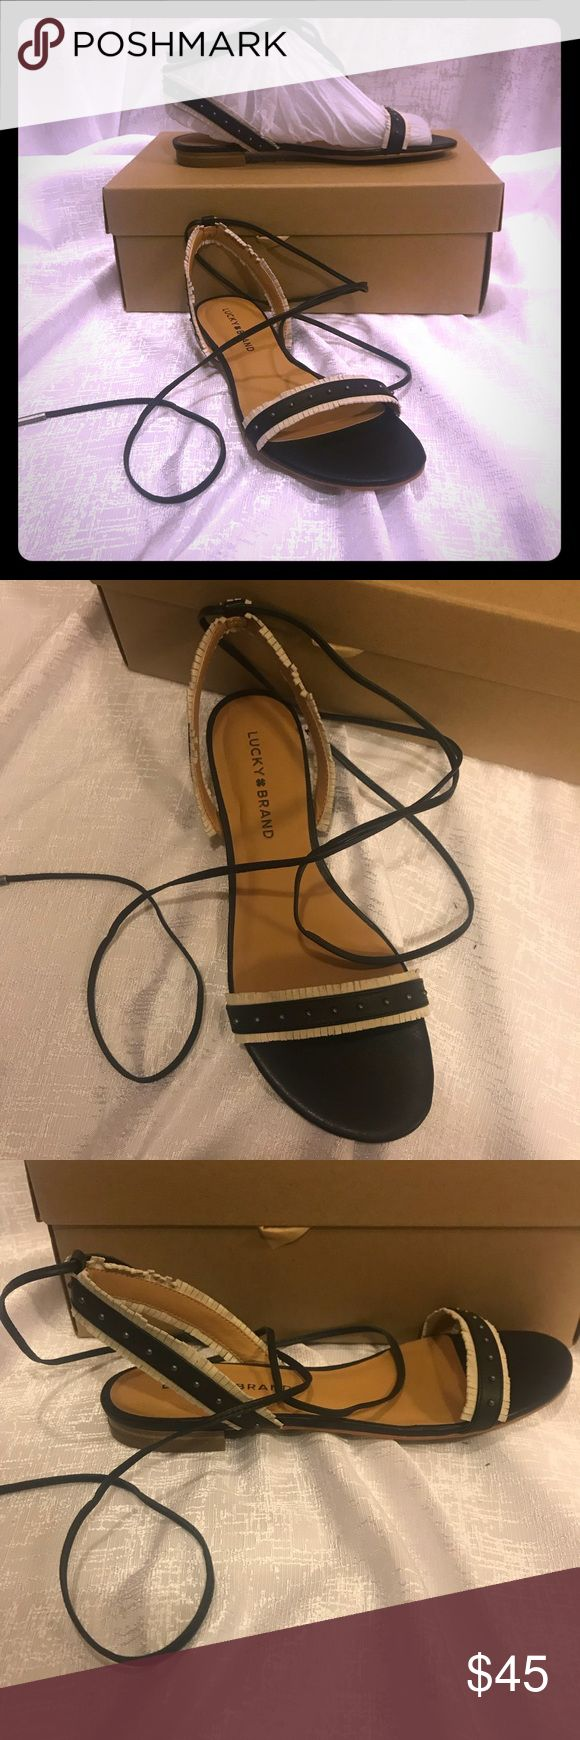 Lucky brand black/Ivori Sandal size 7 NBW Lucky brand black/Ivory  Sandal size 7 NBW with box Lucky Brand Shoes Sandals